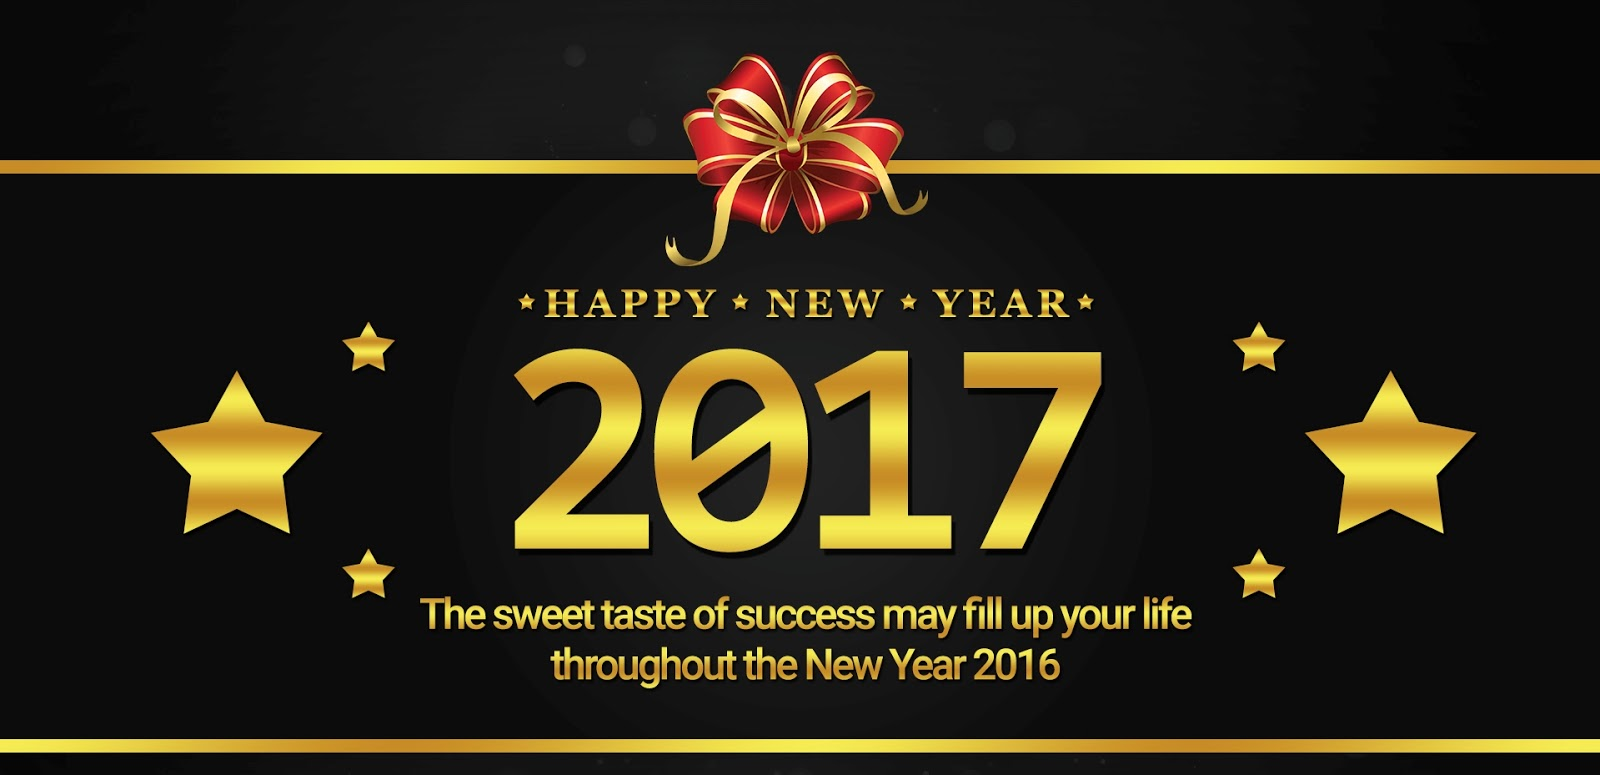 Trendy Facebook Covers 2017 Happy New Year Wishes Banners ~ Happy New ...